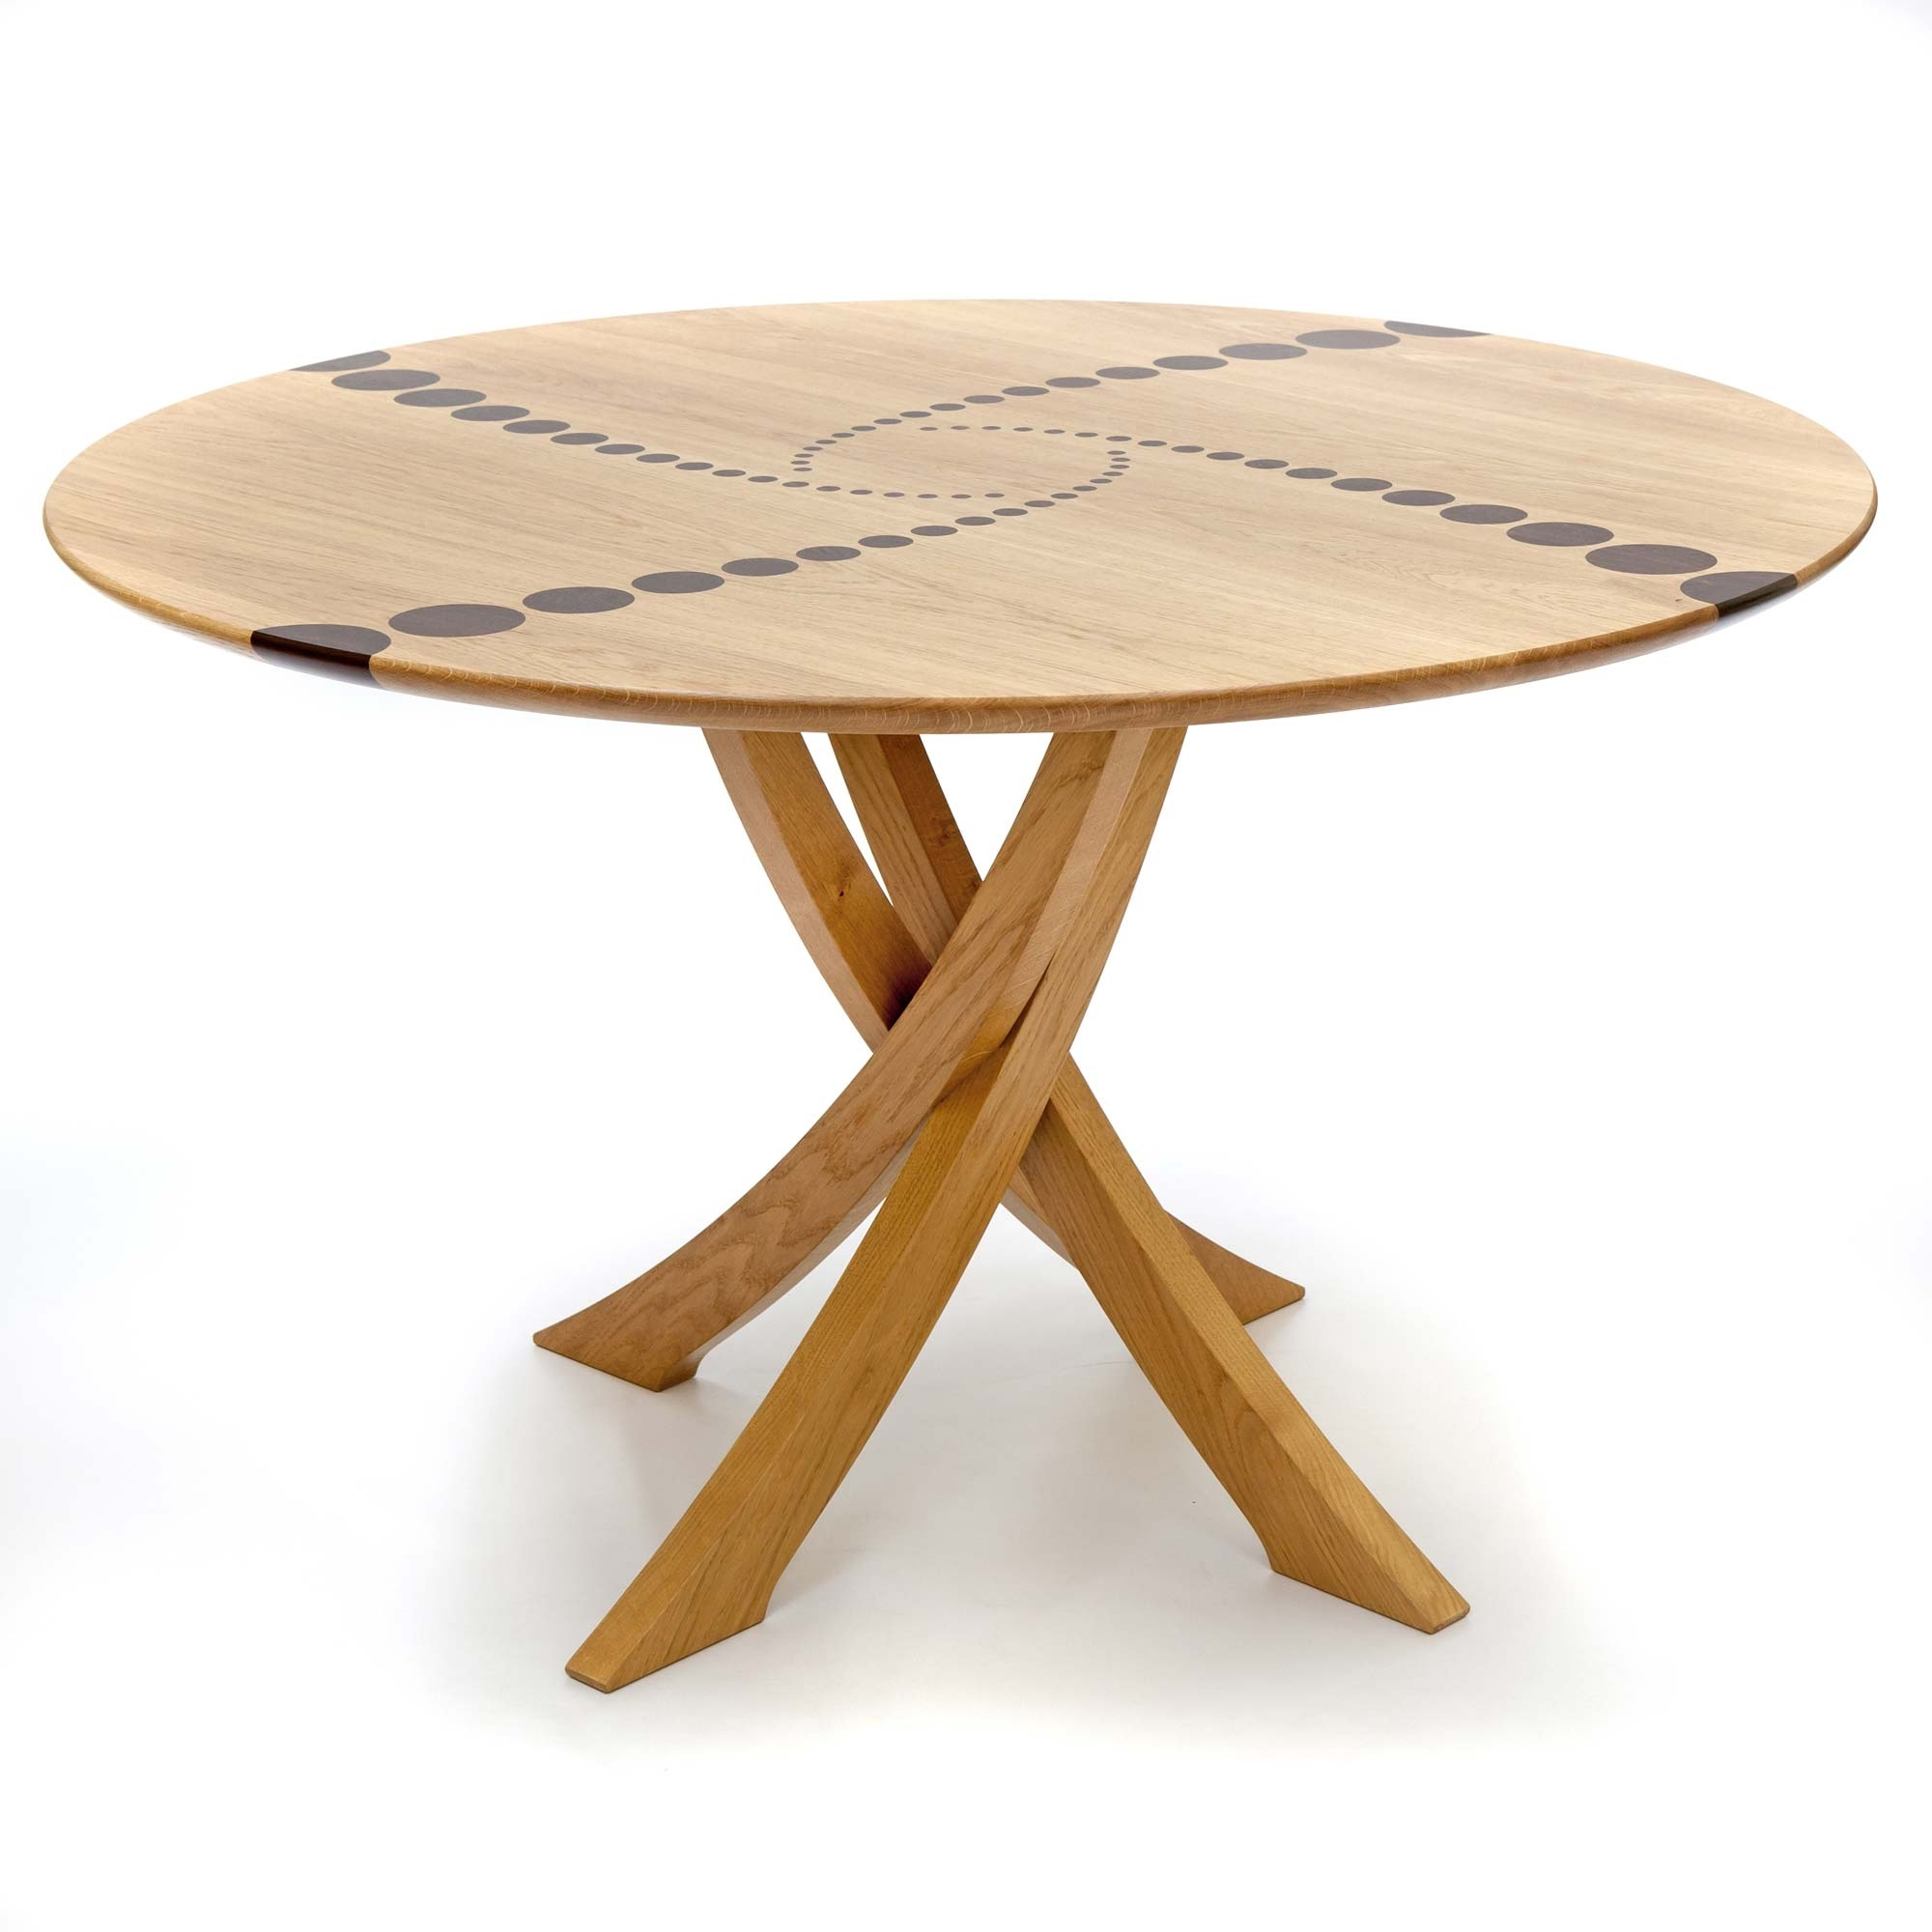 Makers' Eye Pertaining To Trendy Circular Oak Dining Tables (View 3 of 25)